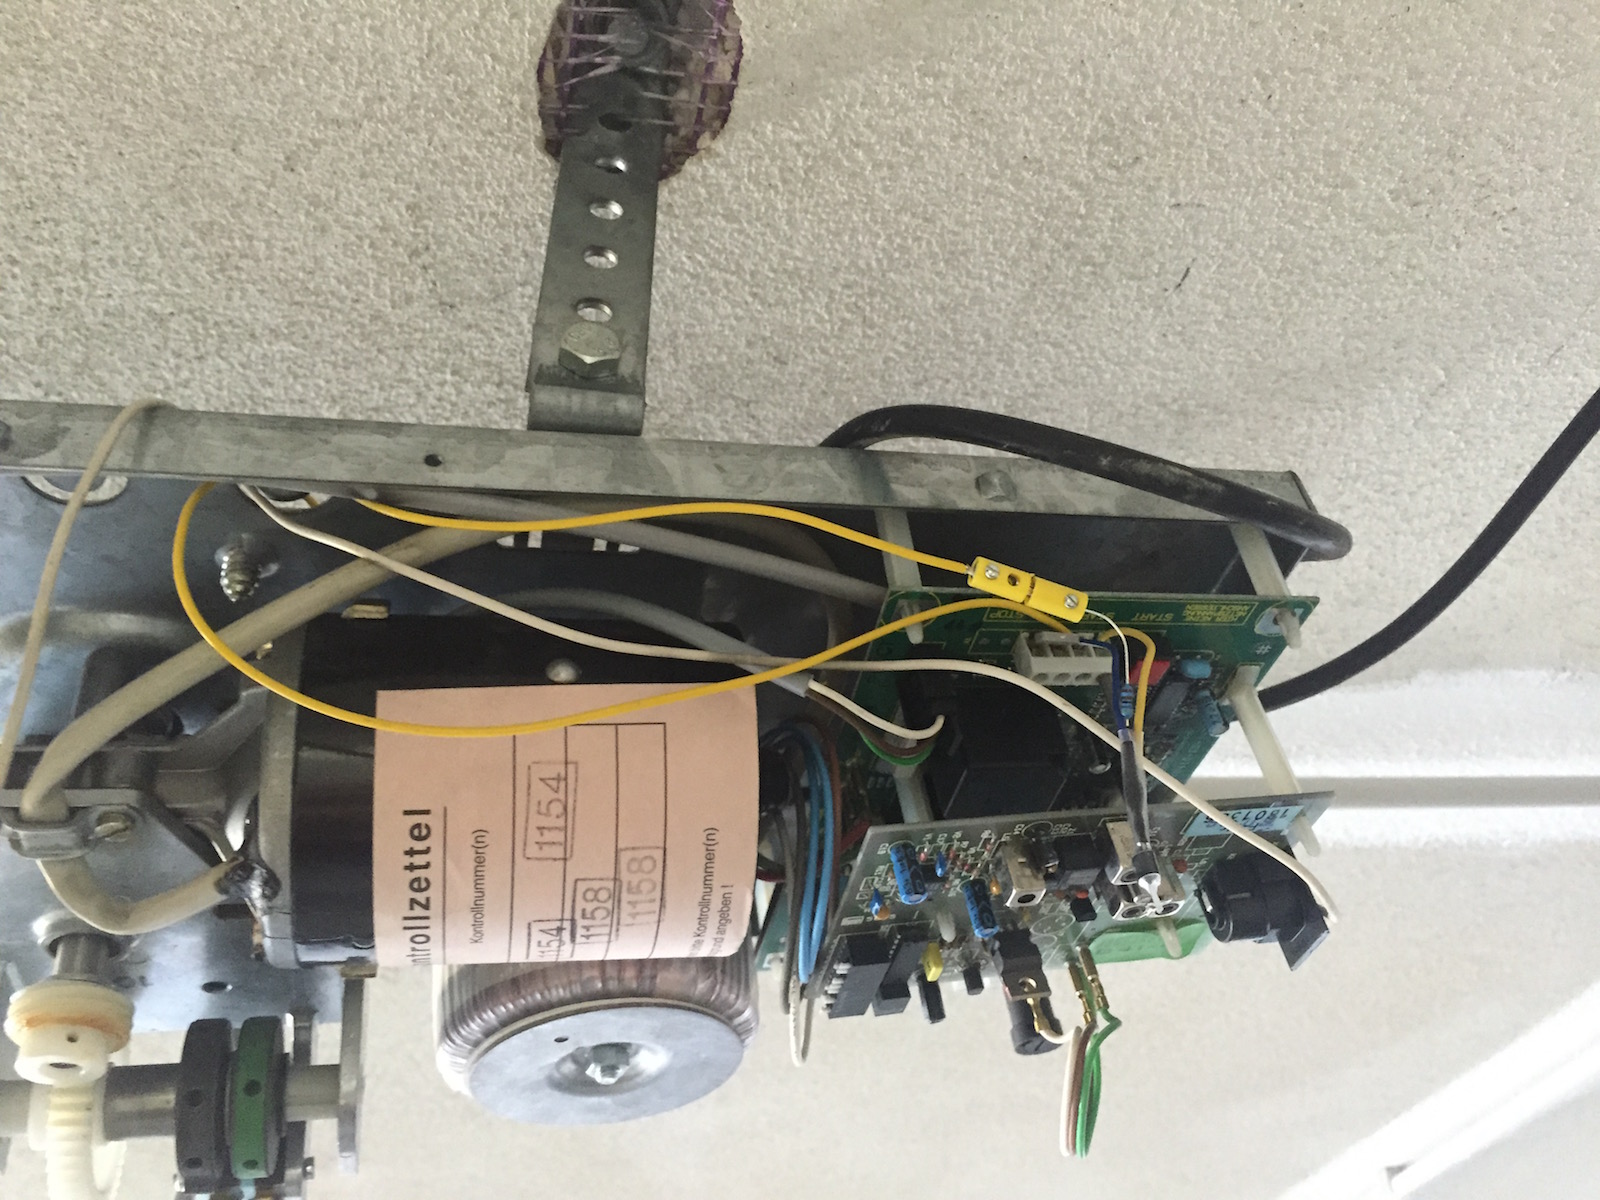 Raspberry Pi Garage Door Controller Glumb Opener Wiring Diagram Further Electrical Rpi We Mounted The Wires